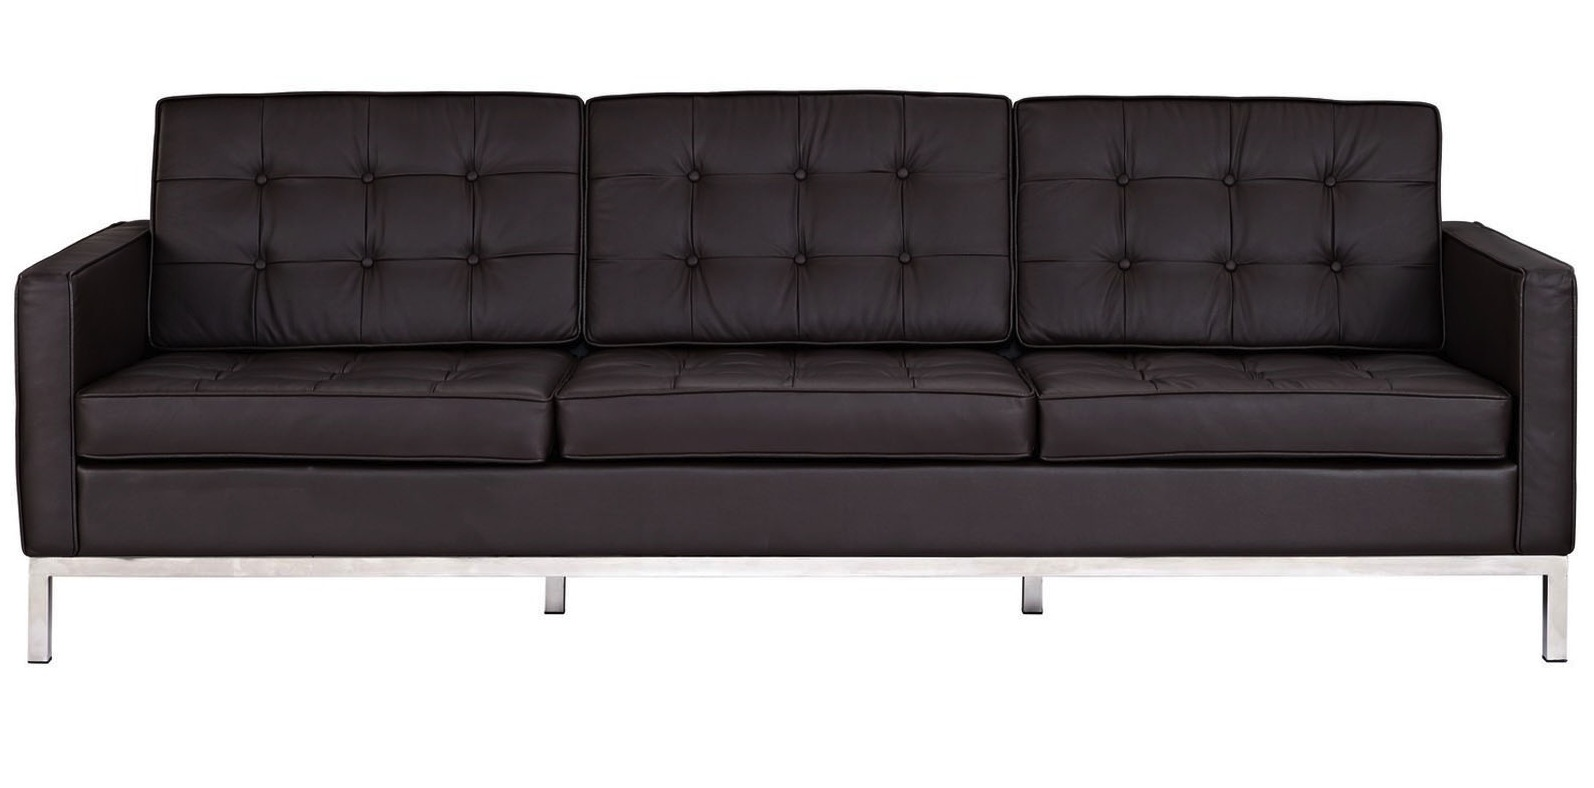 florence-sofa-in-brown-leather.jpg